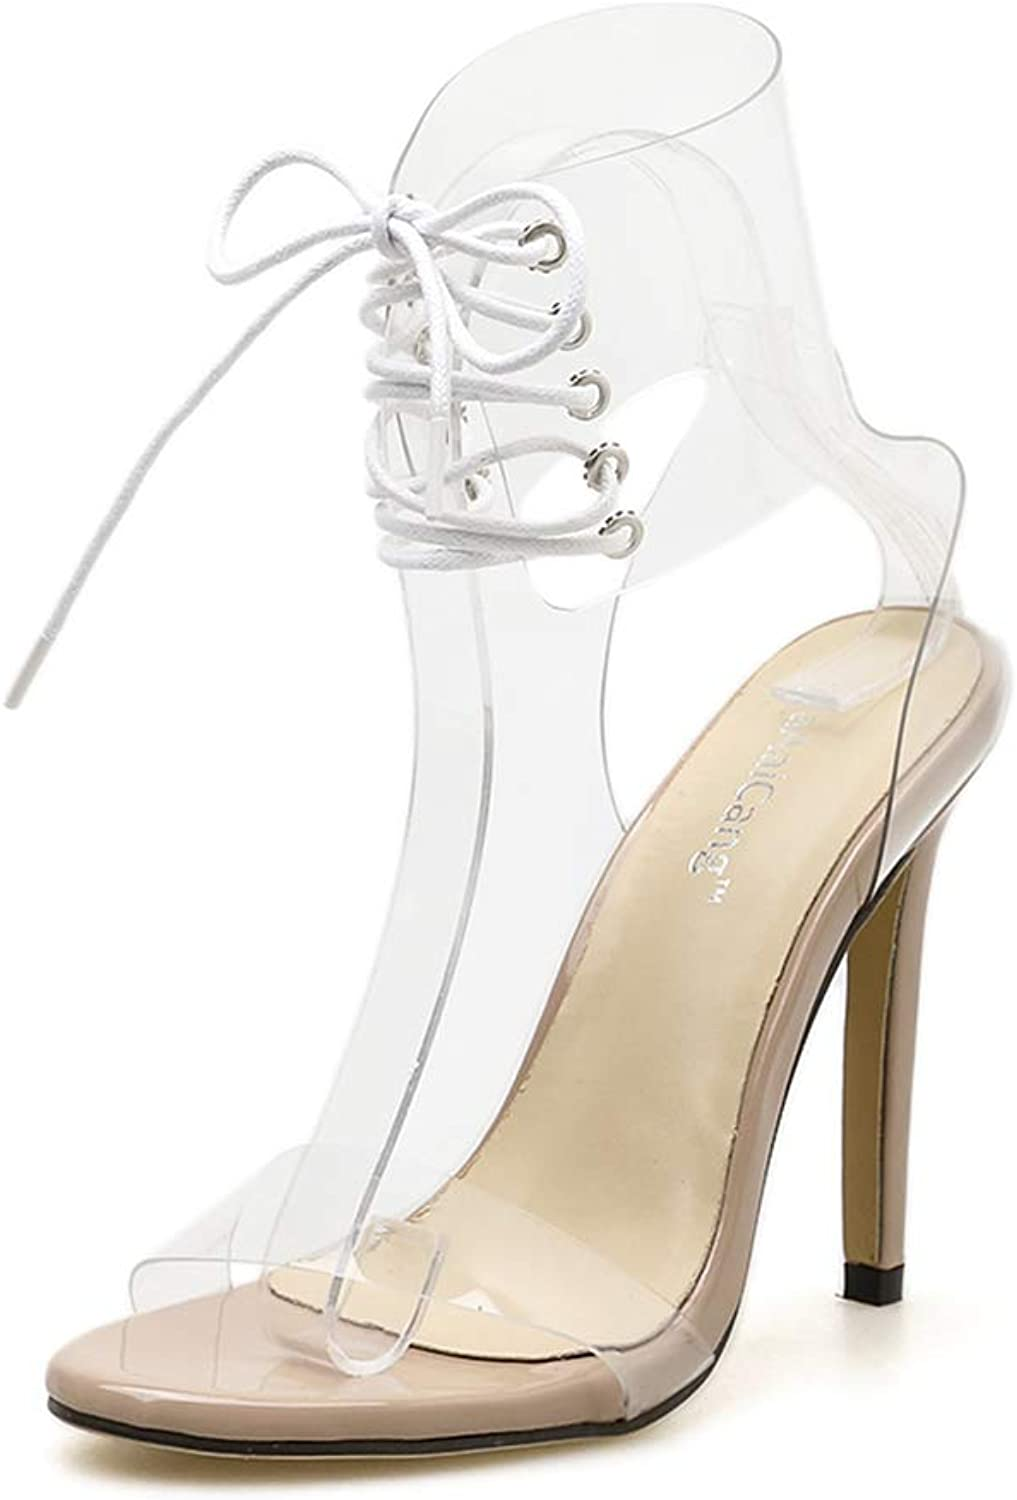 Women's High Heels shoes Black Pumps AnkleTransparent Strappy Lace Up Open Toe High Heels Sandals,Apricot,37